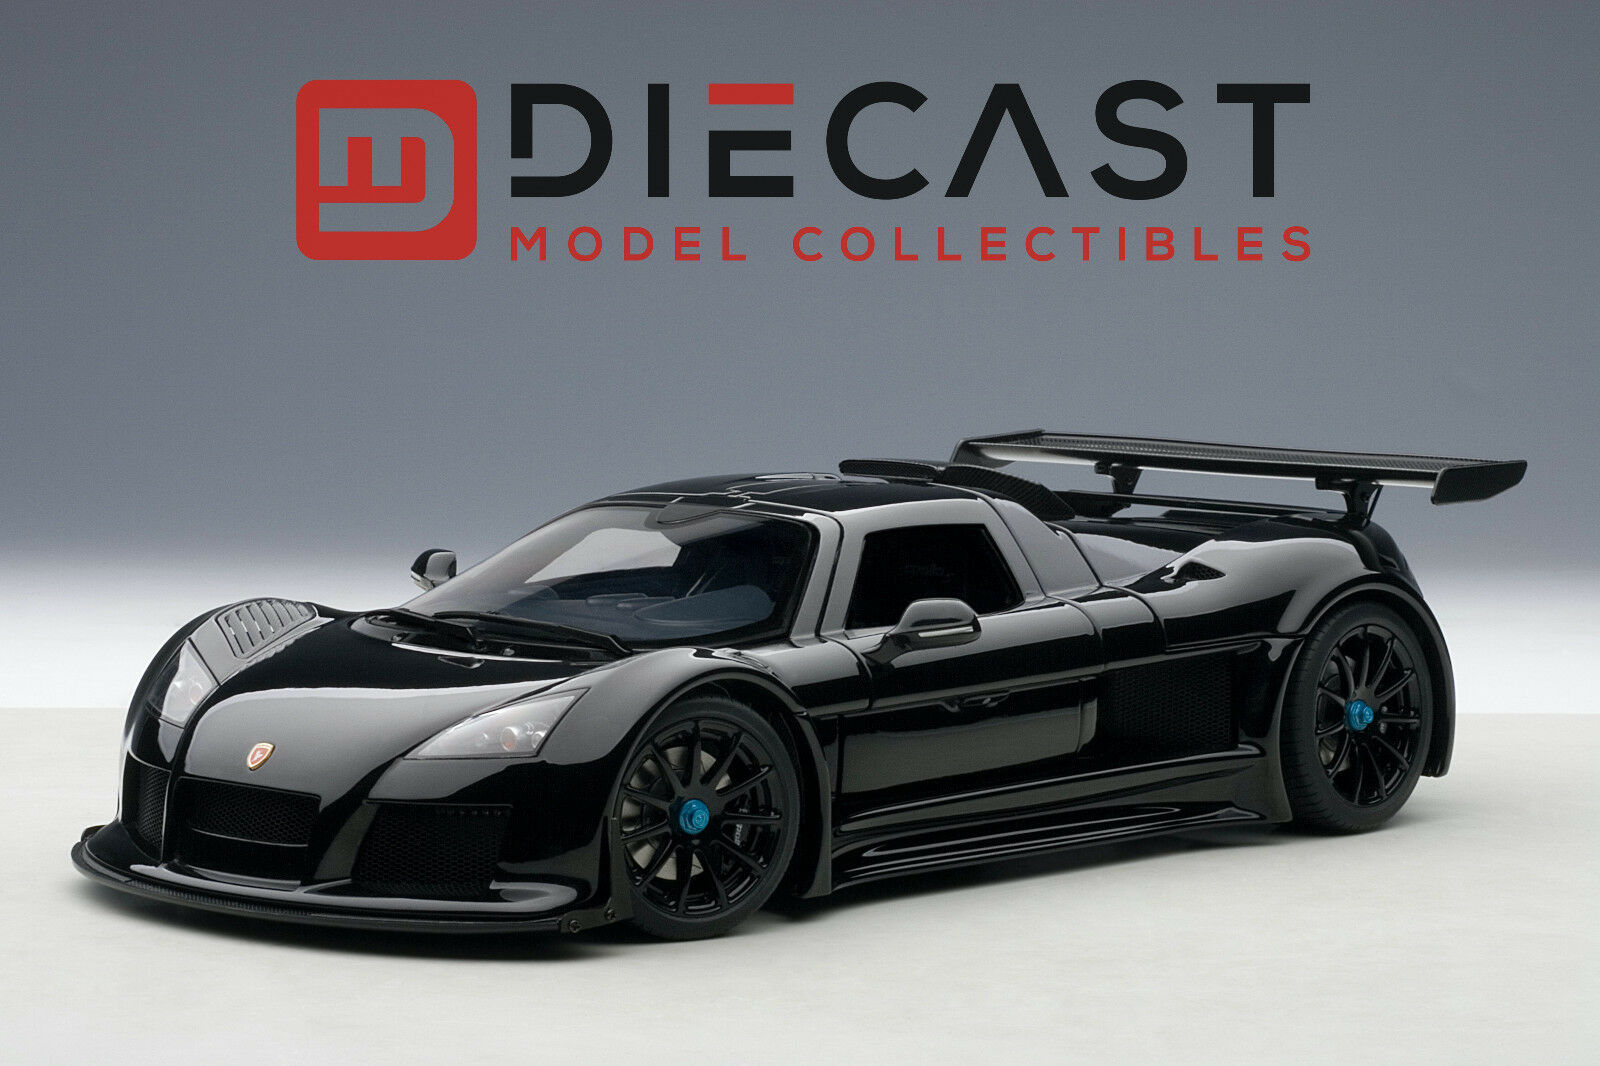 AUTOART 71301 GUMPERT APOLLO, noir brillant 1 18TH échelle